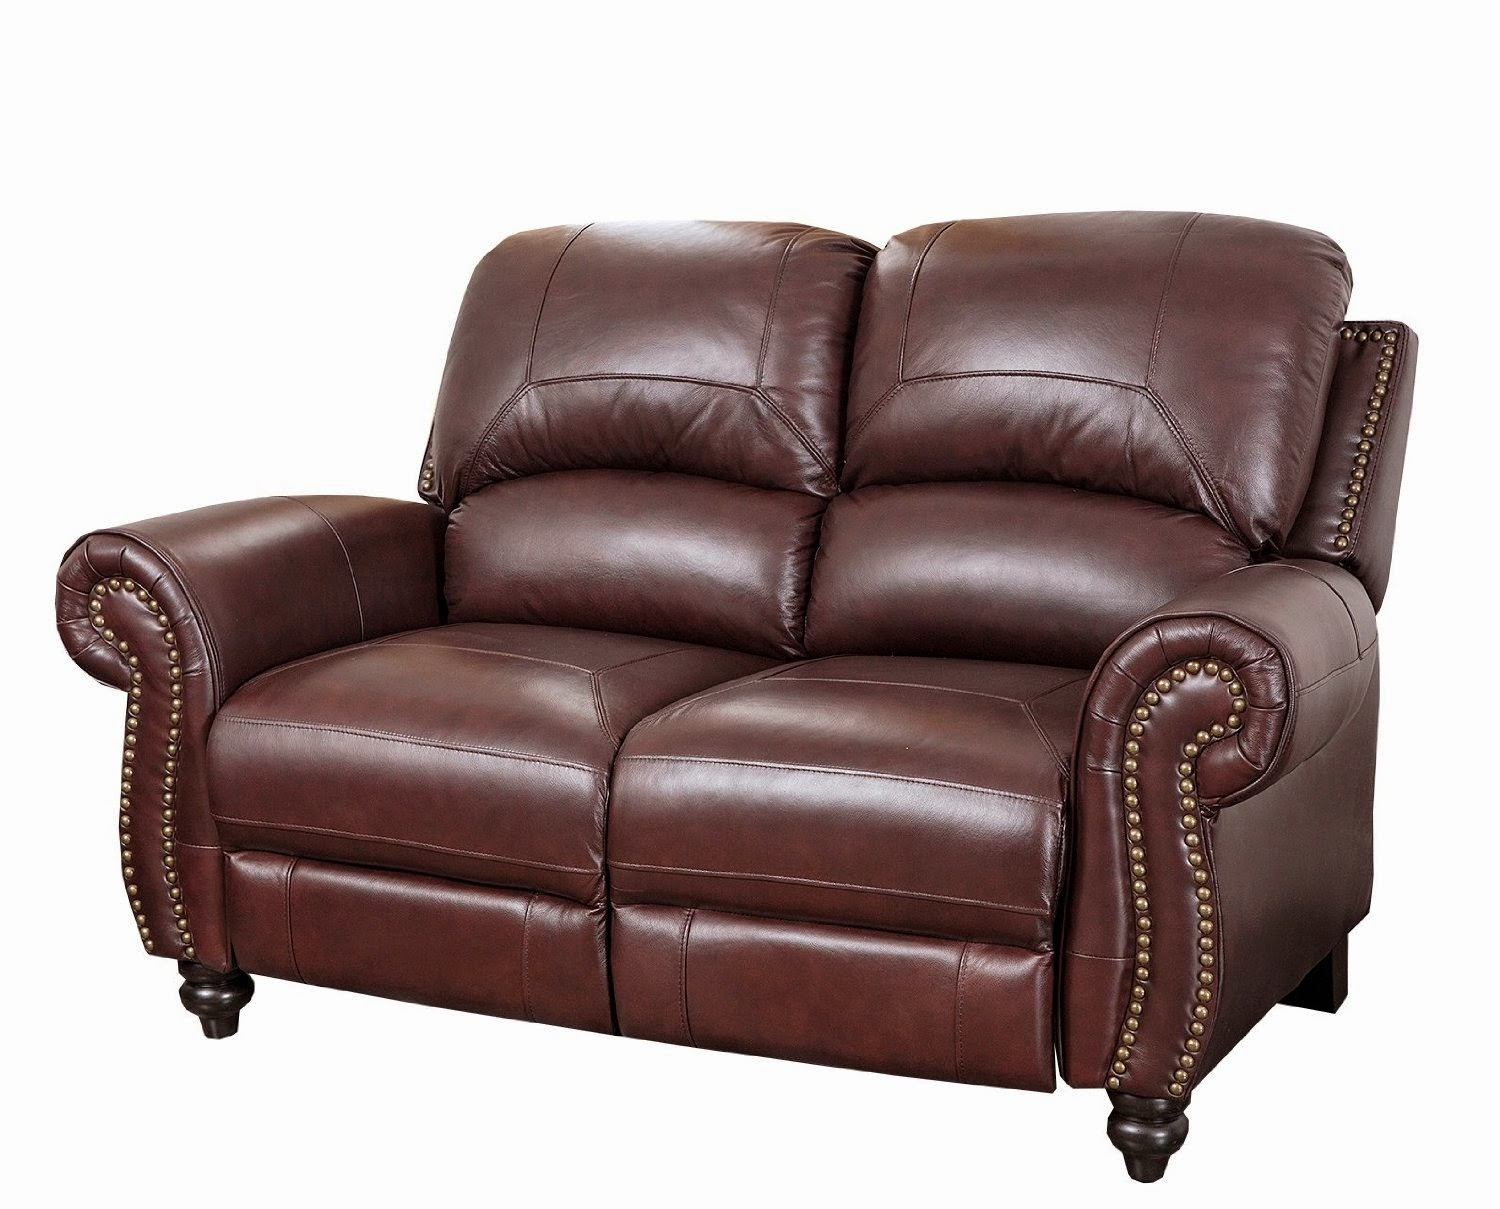 Best reclining sofa for the money vivaldi 2 seater Reclining leather sofa and loveseat